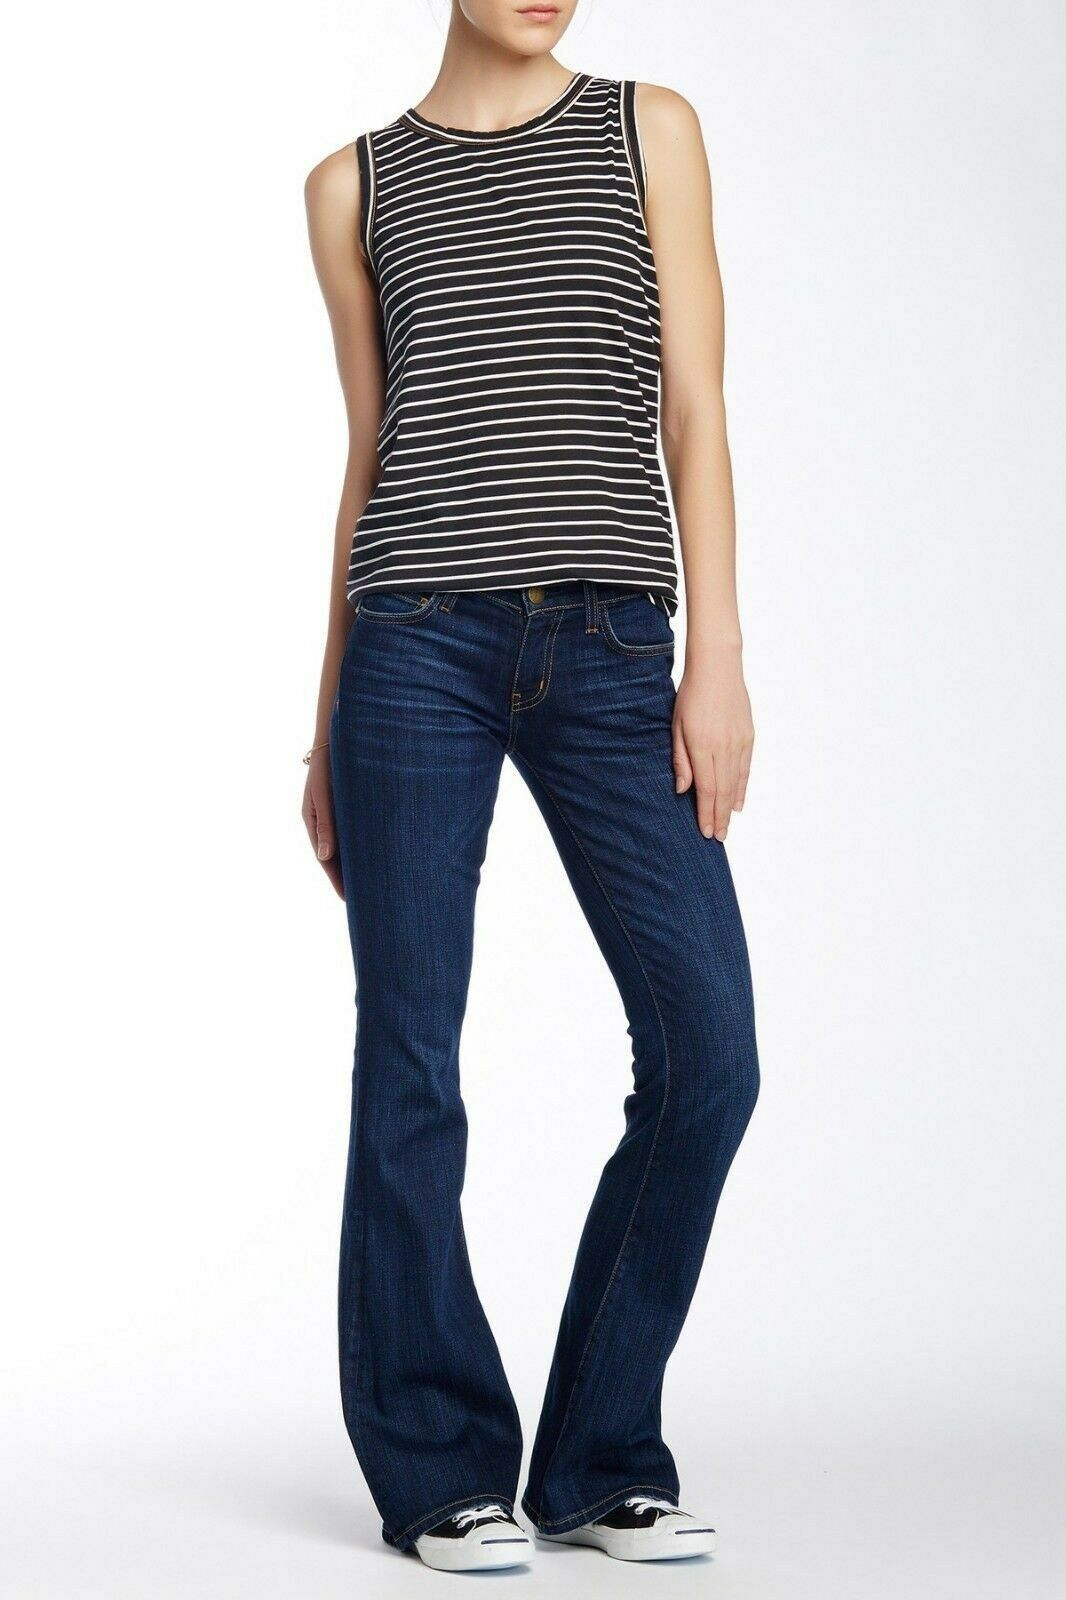 CURRENT ELLIOTT  The Low Bell  Jeans in Gibson NEW sz 25